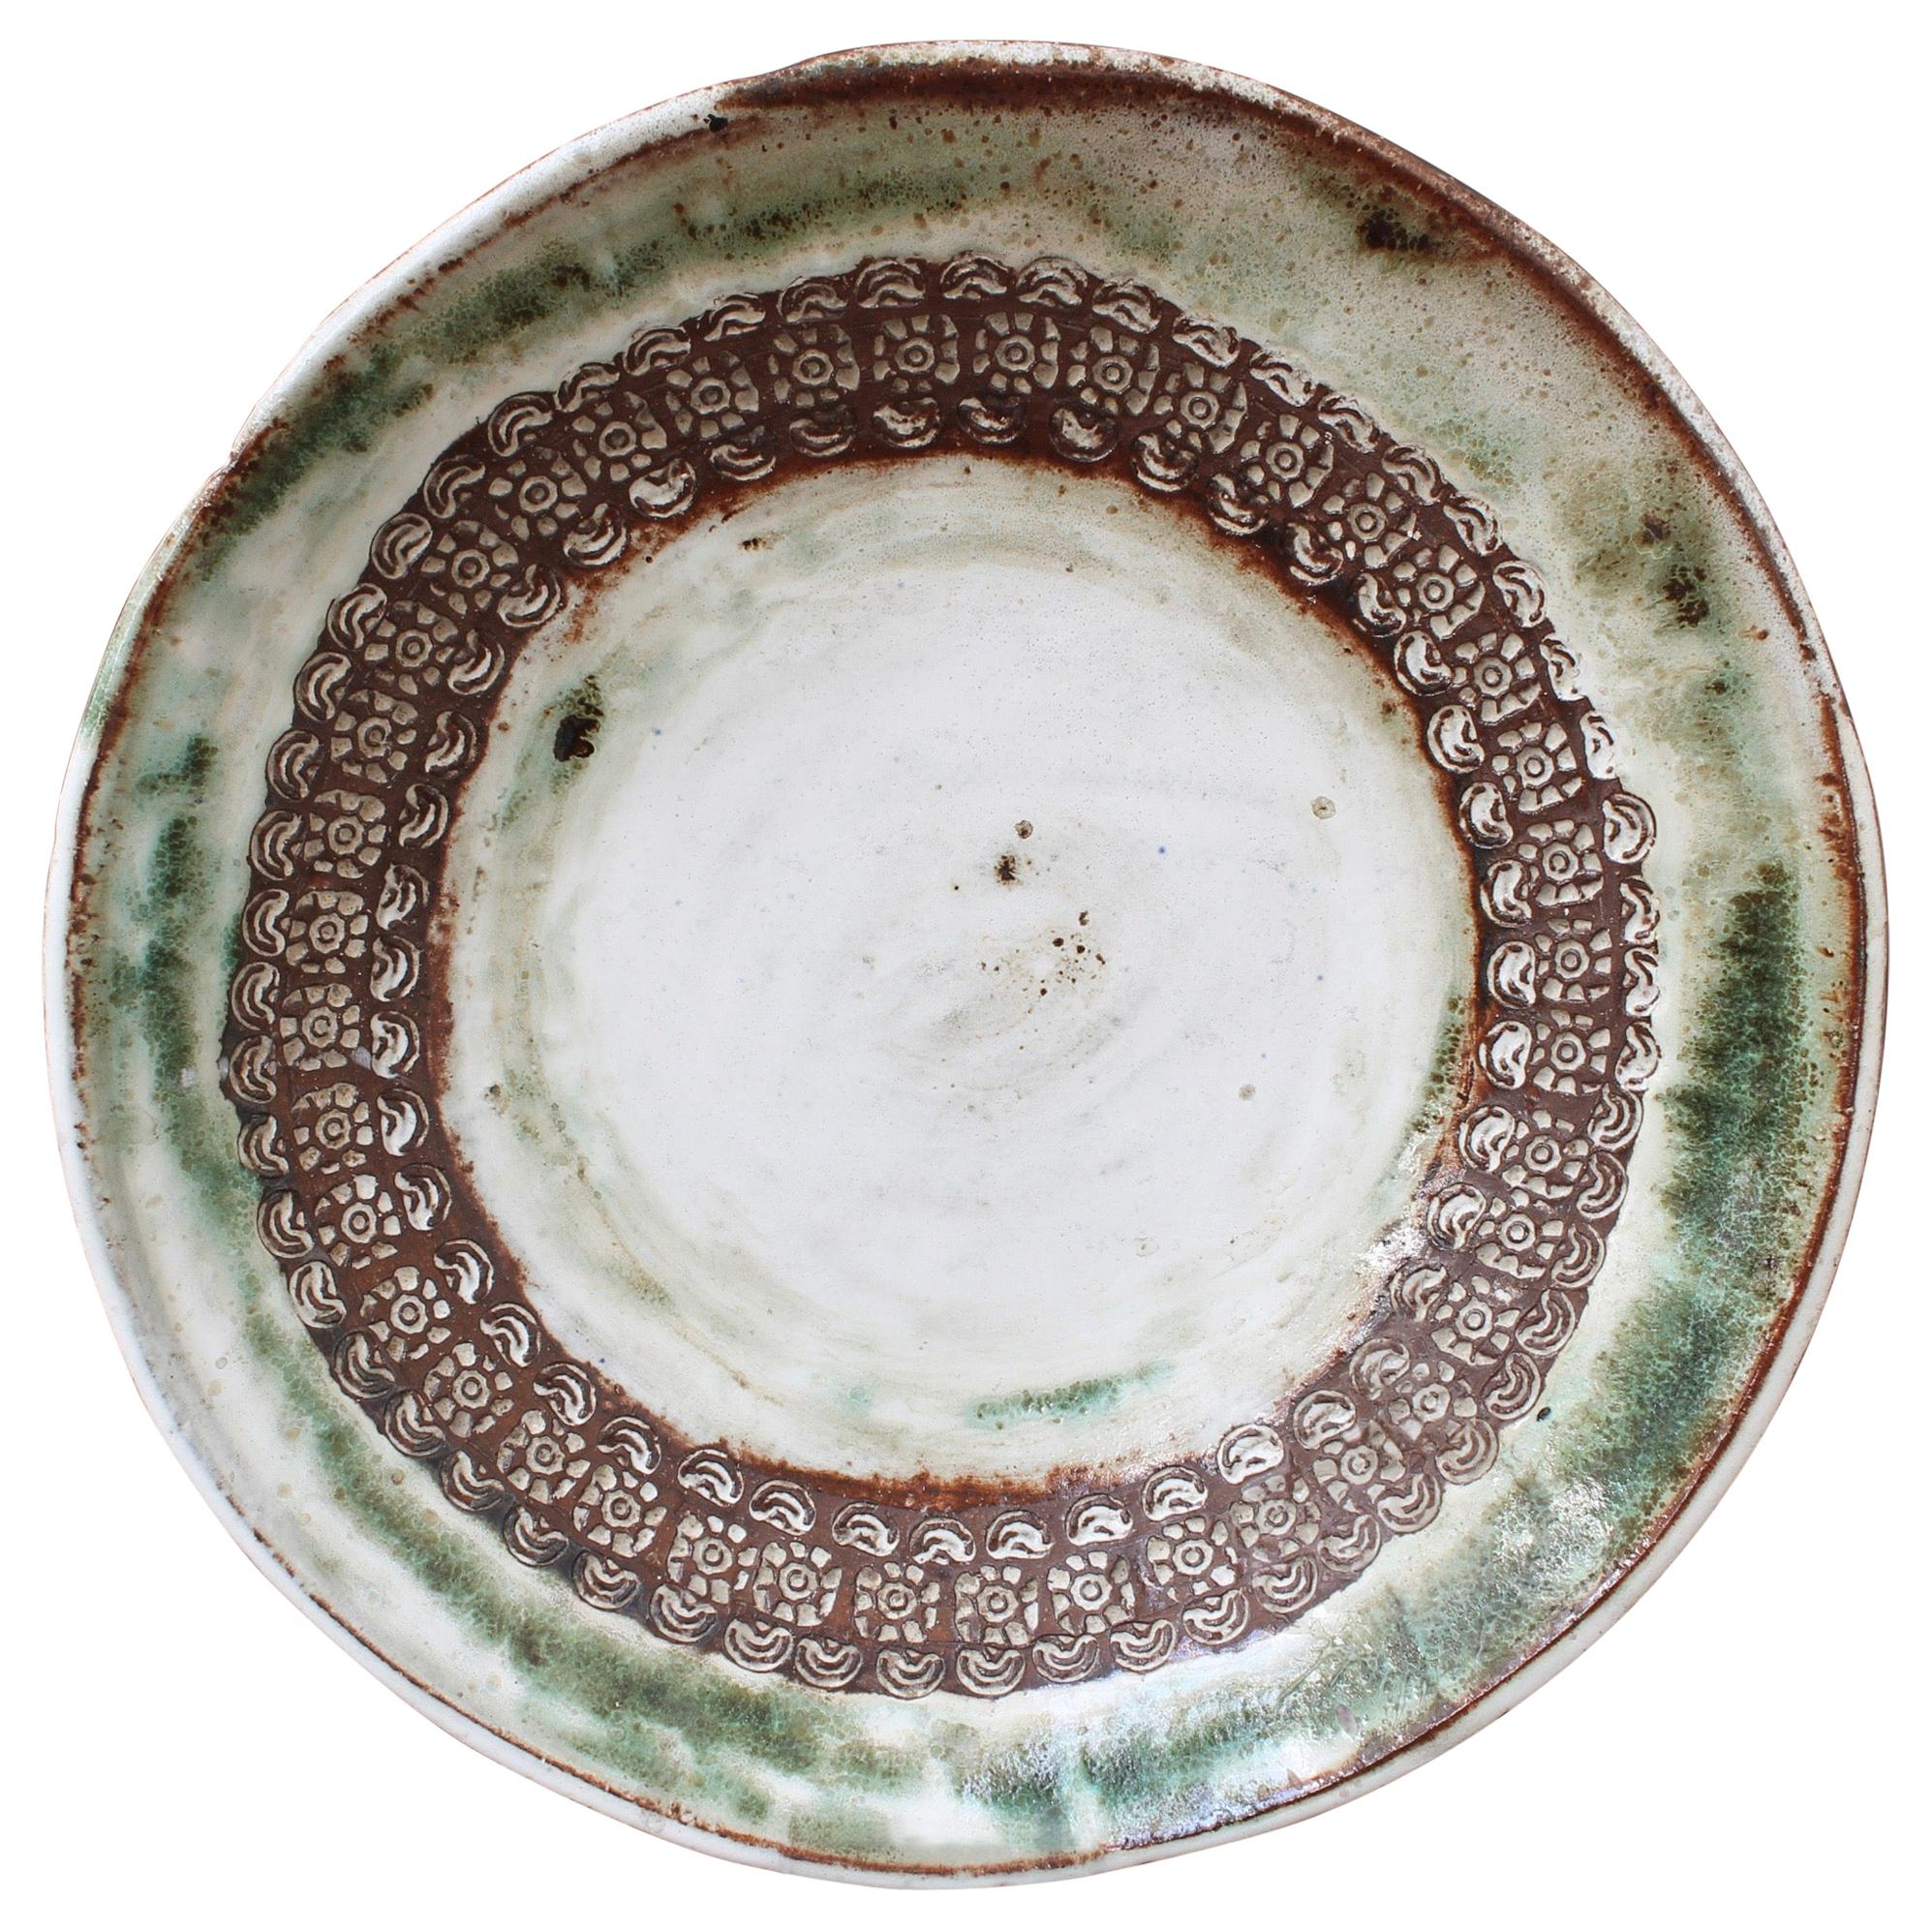 Large Midcentury Decorative Platter by Albert Thiry, circa 1960s